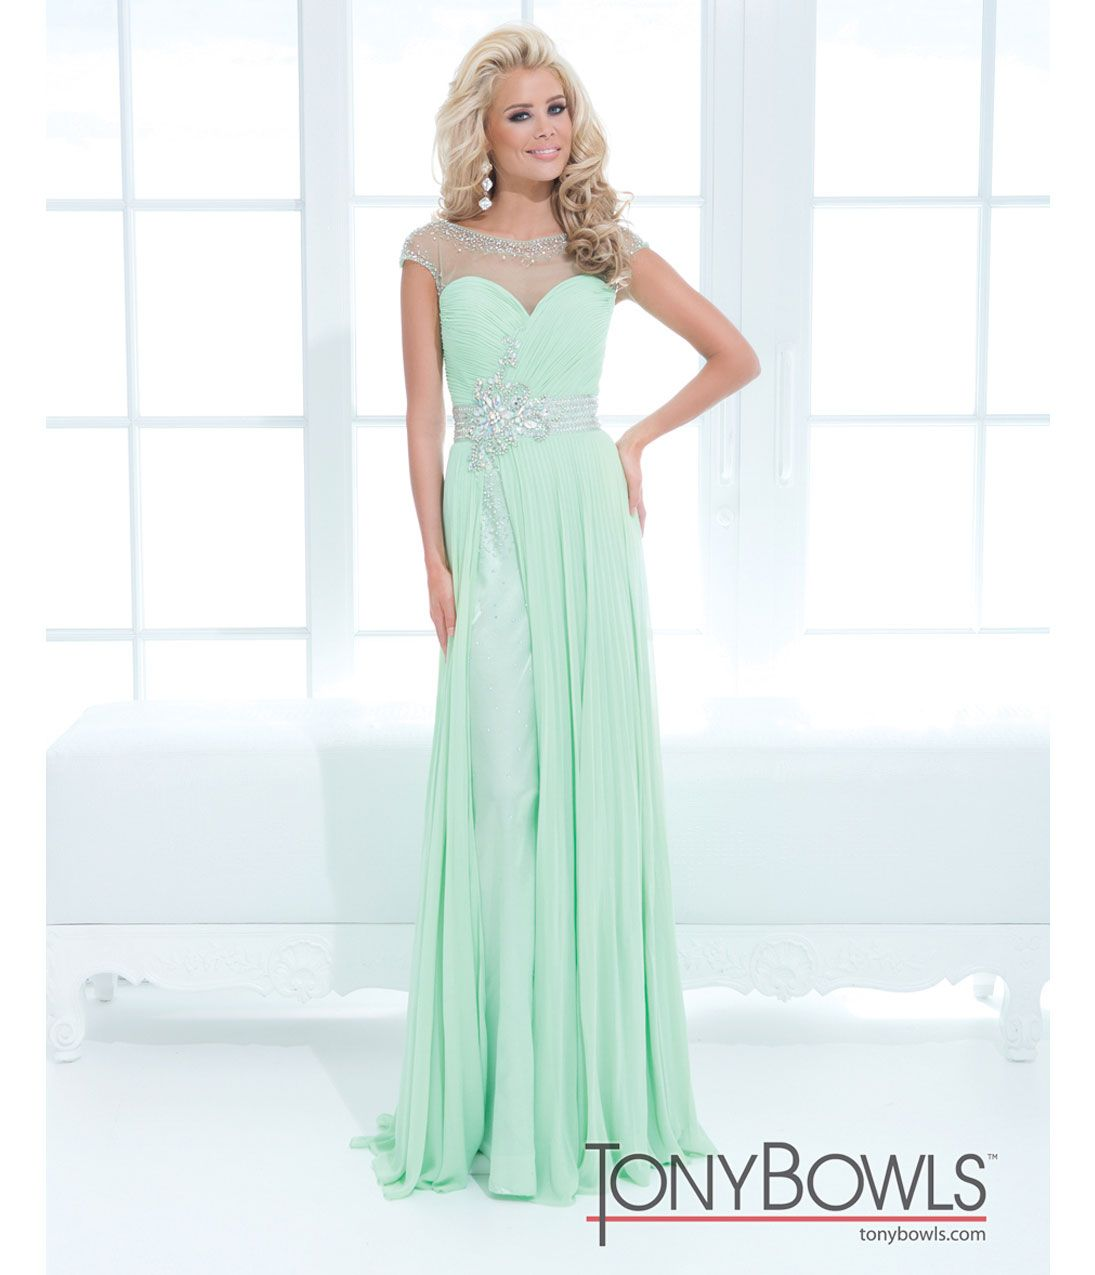 Mint Green Homecoming Dress With Straps - Missy Dress